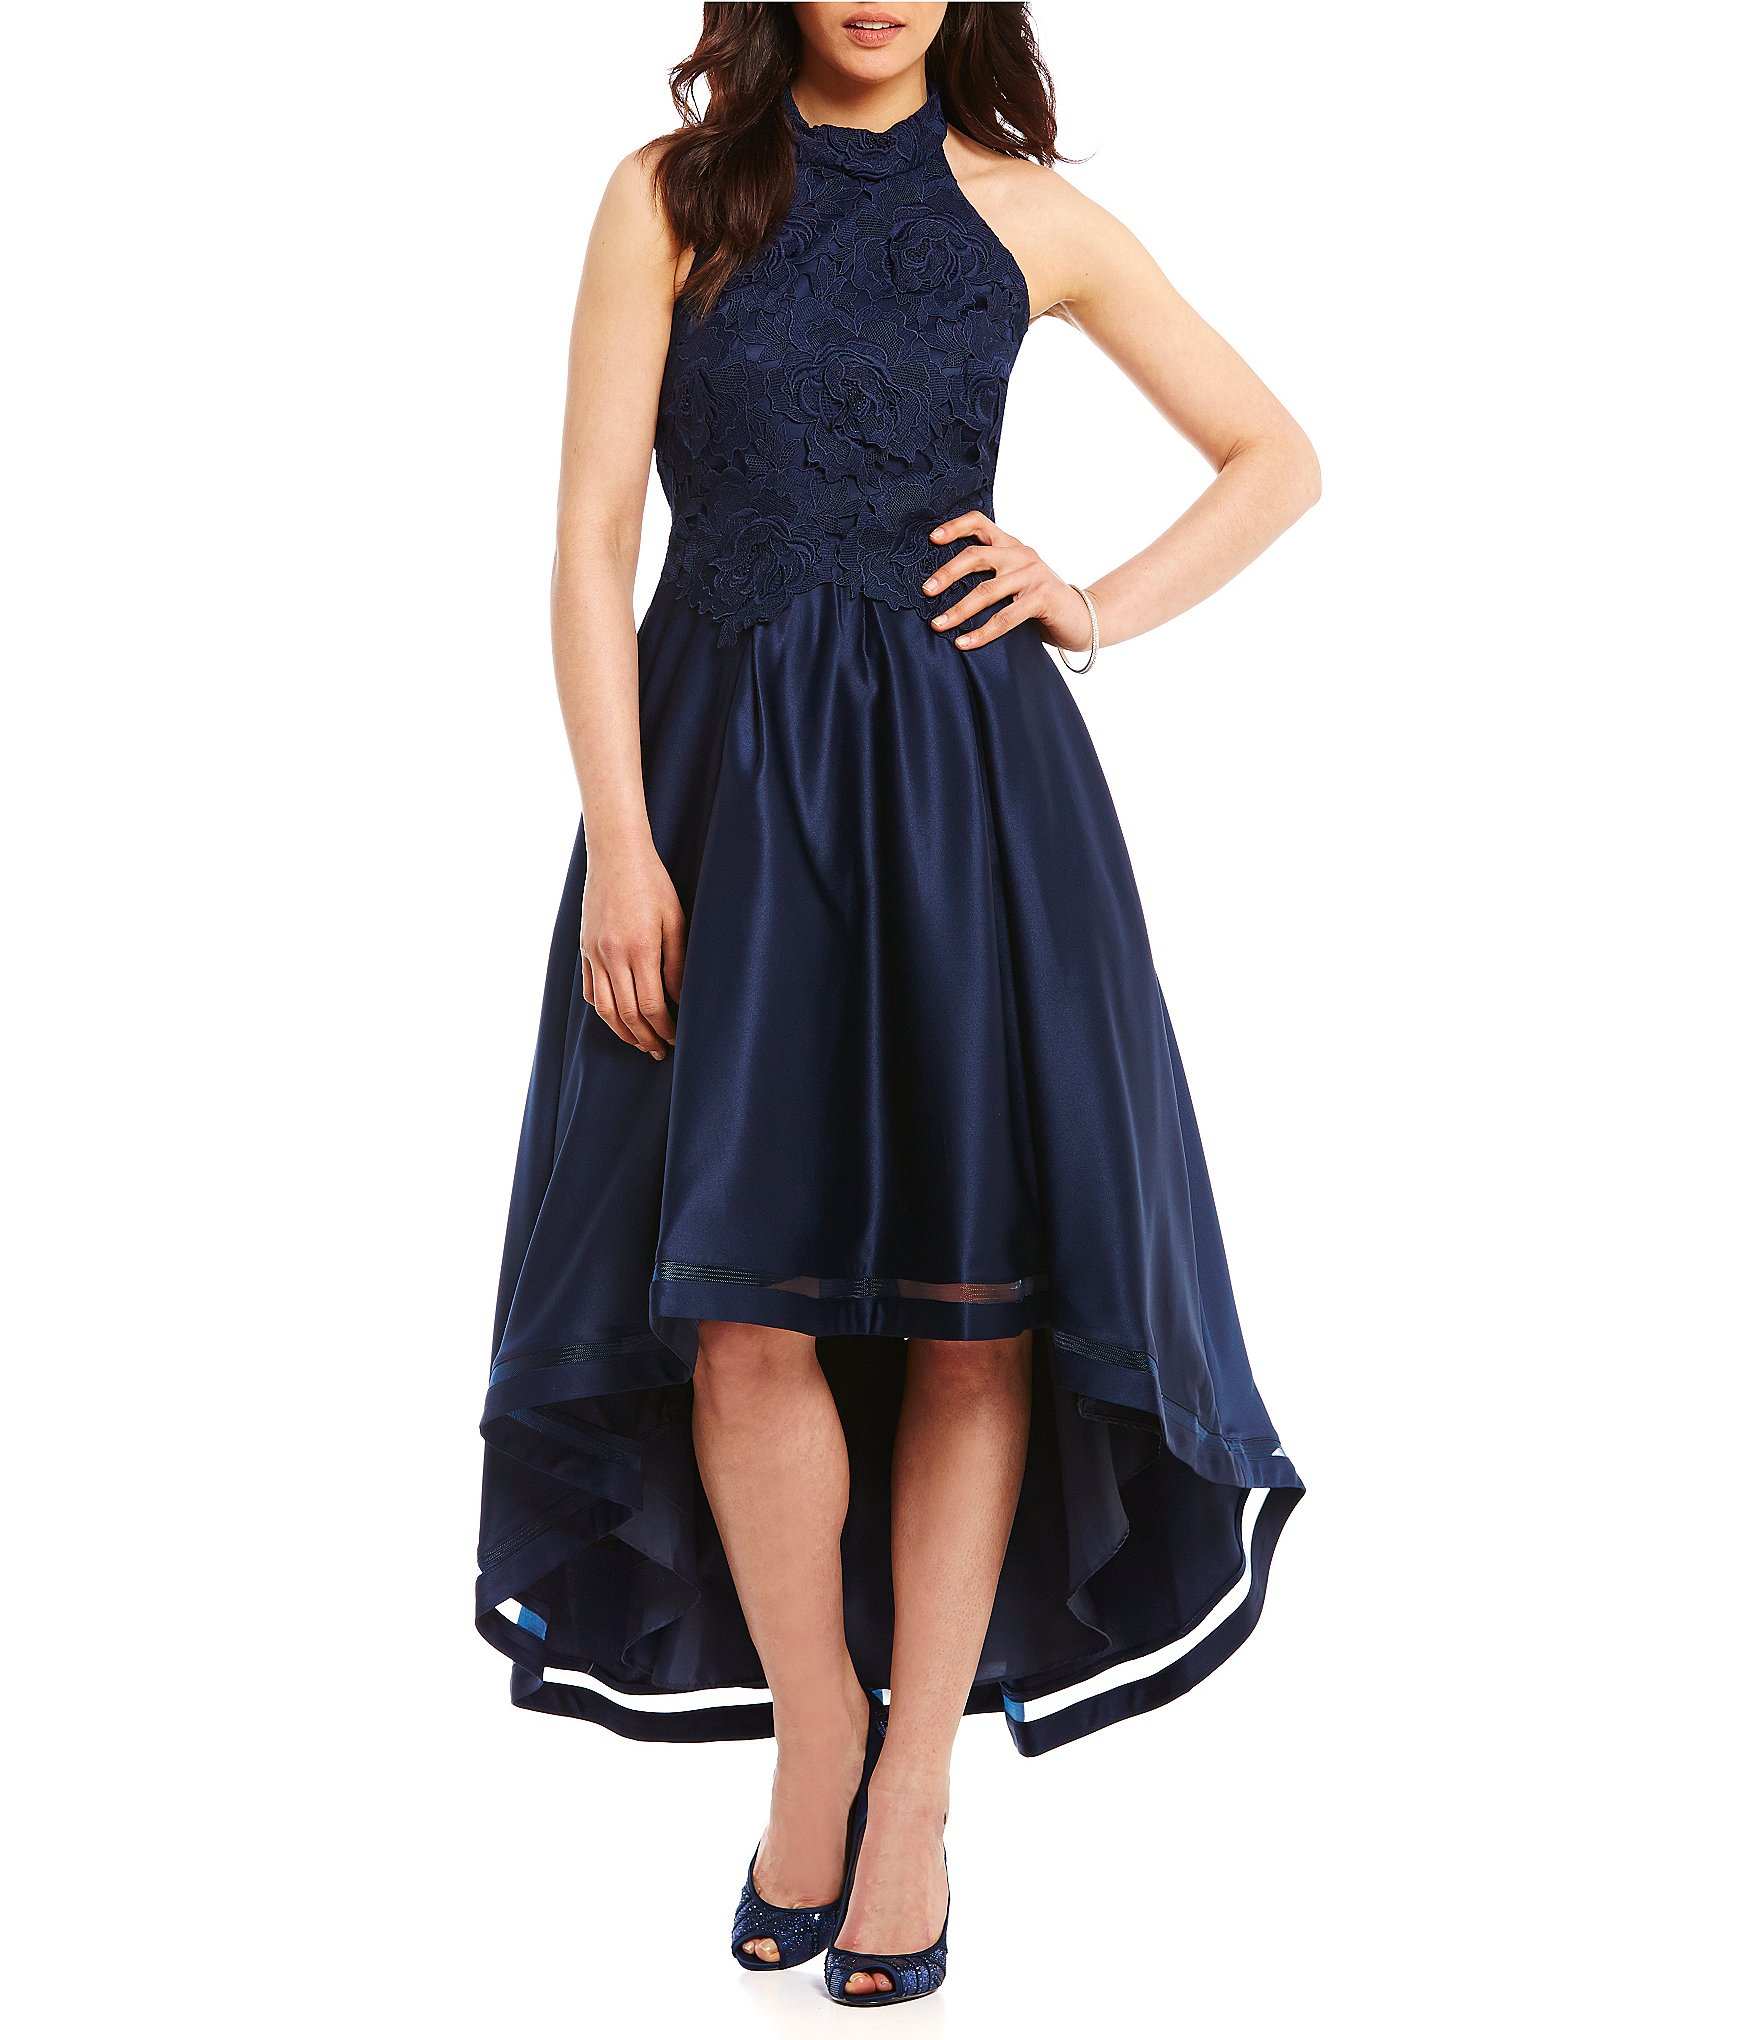 navy blue dress: womenu0027s clothing u0026 apparel | dillards.com hokapwh